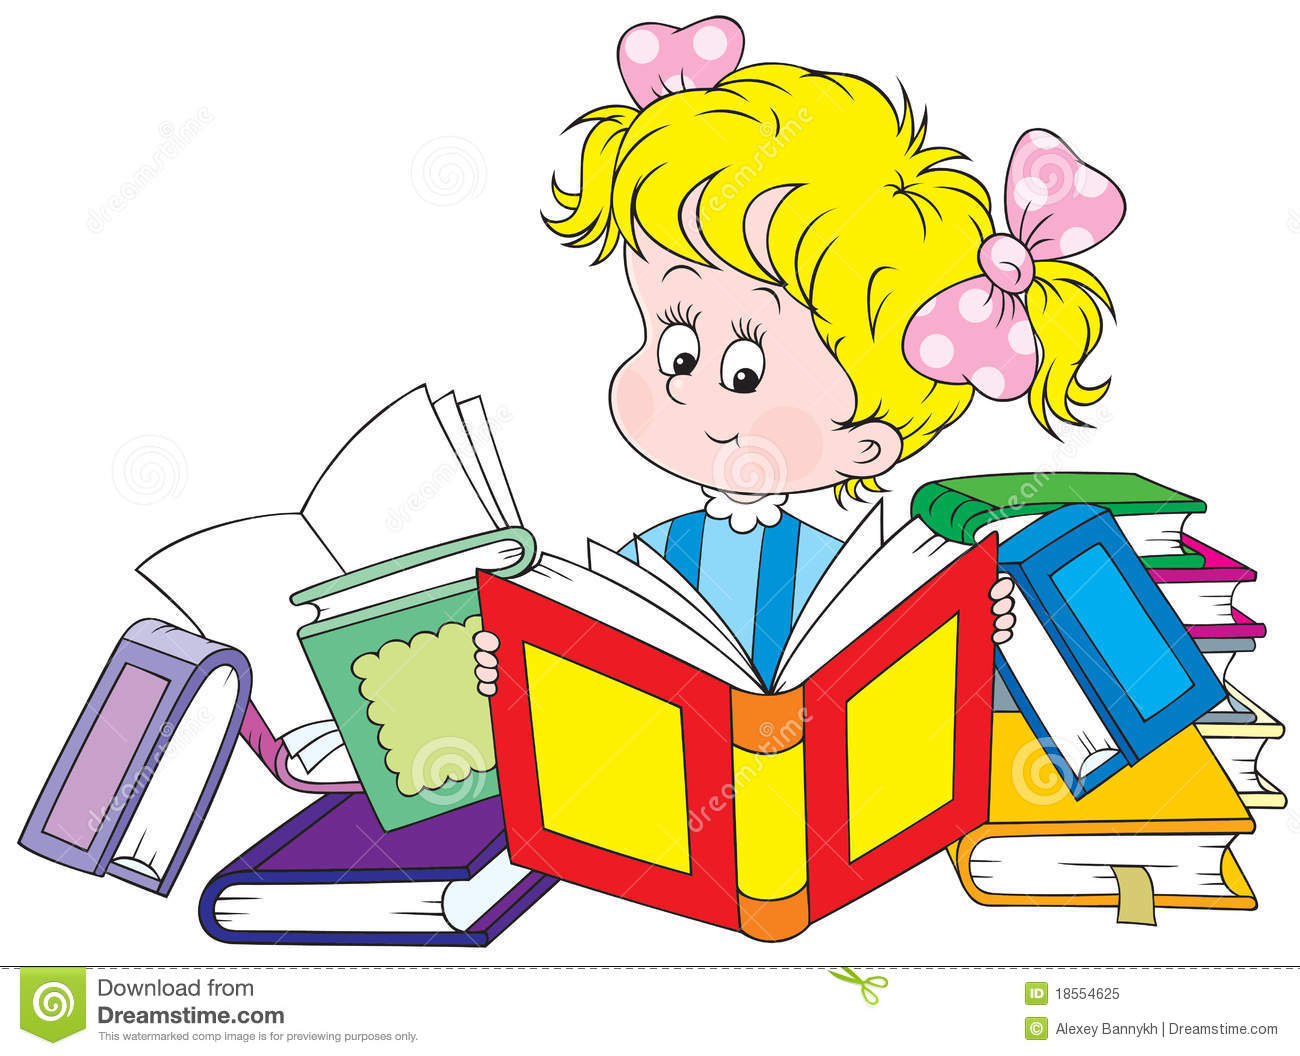 Clipart of girl with books vector Picture of little girl reading book clipart - ClipartFest vector